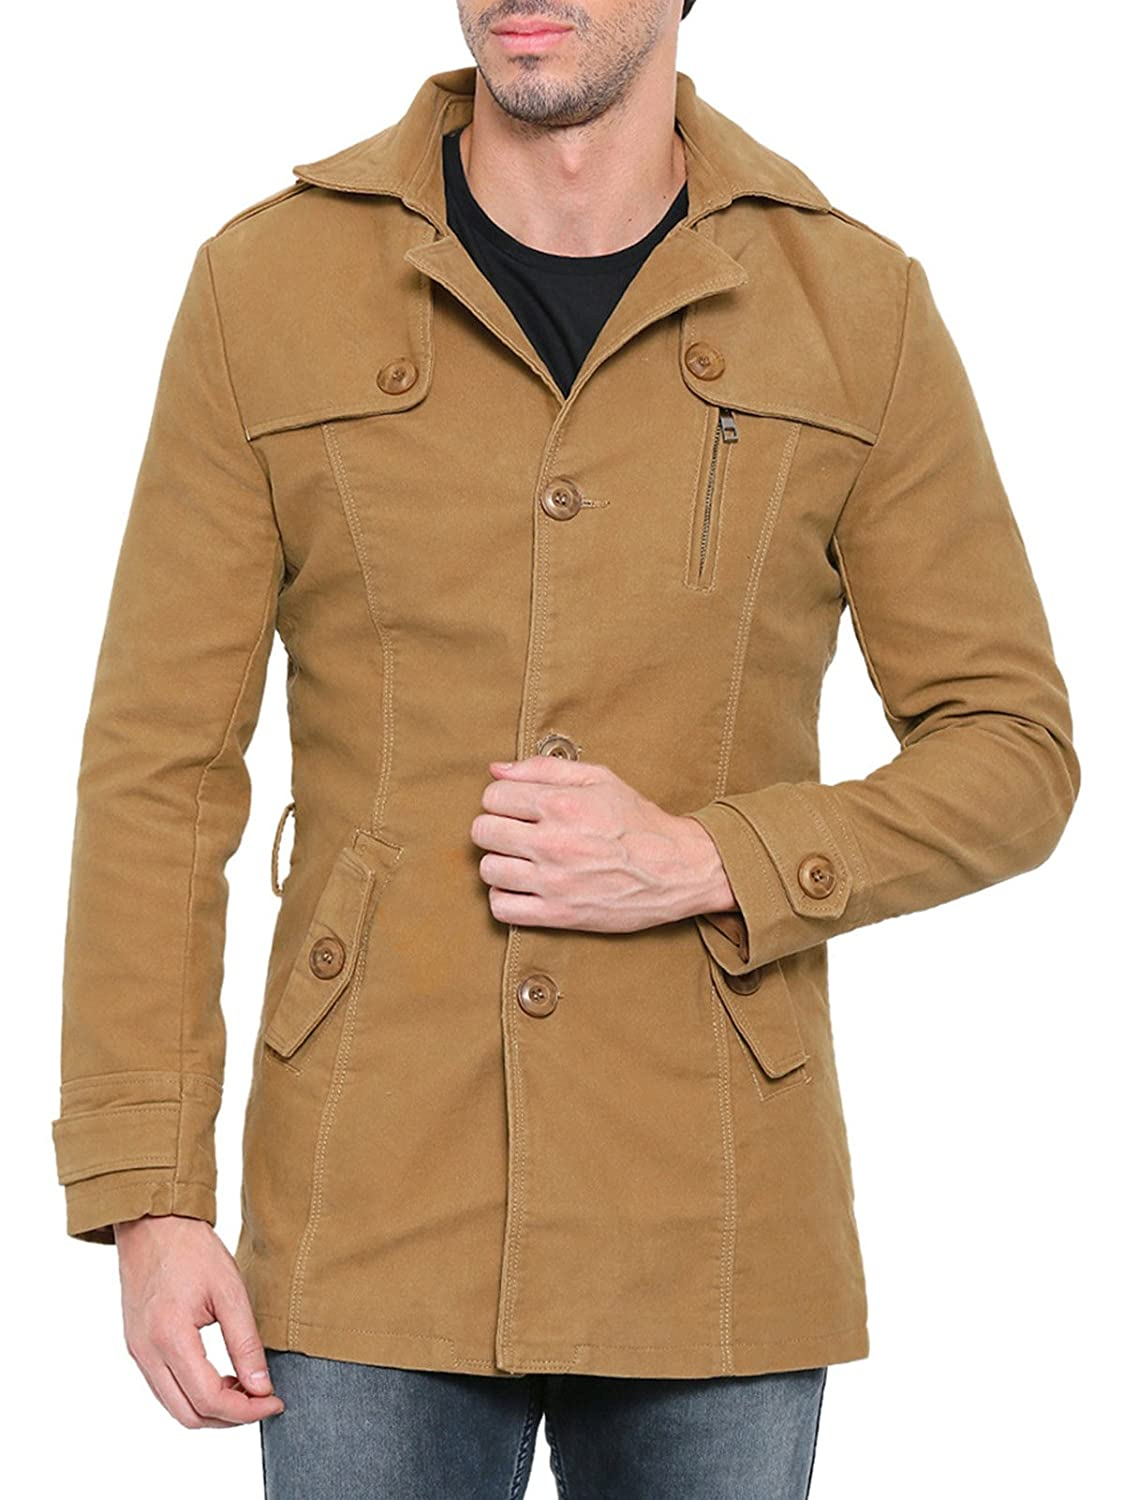 Showoff Men's Full Sleeves Solid Beige Casual Jacket